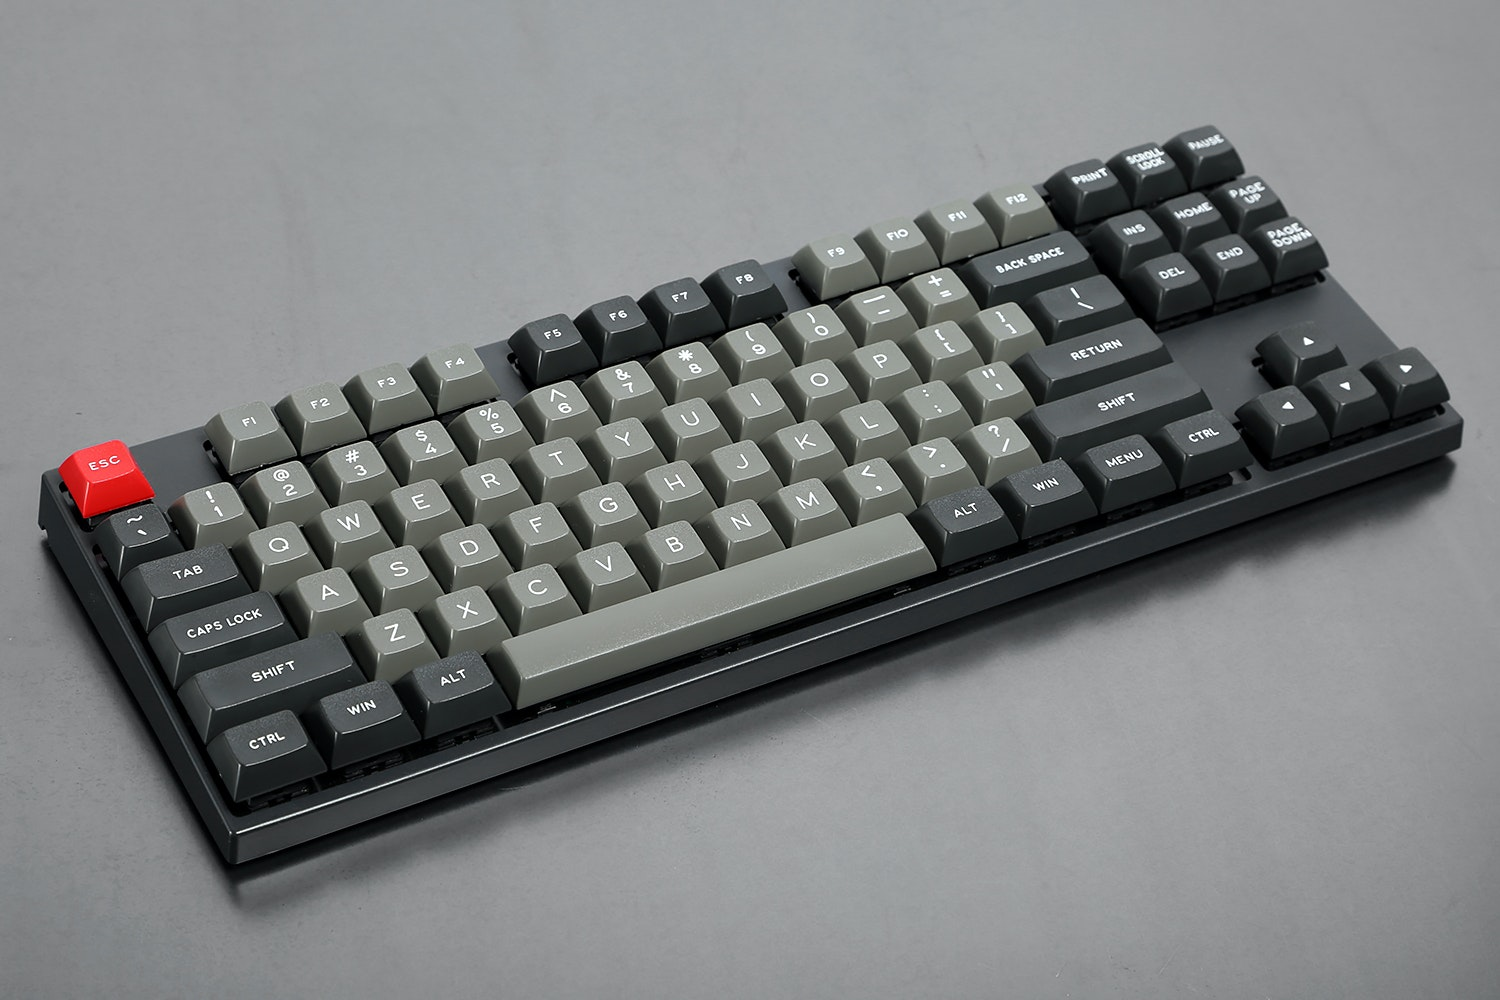 DSA Dolch Key Set